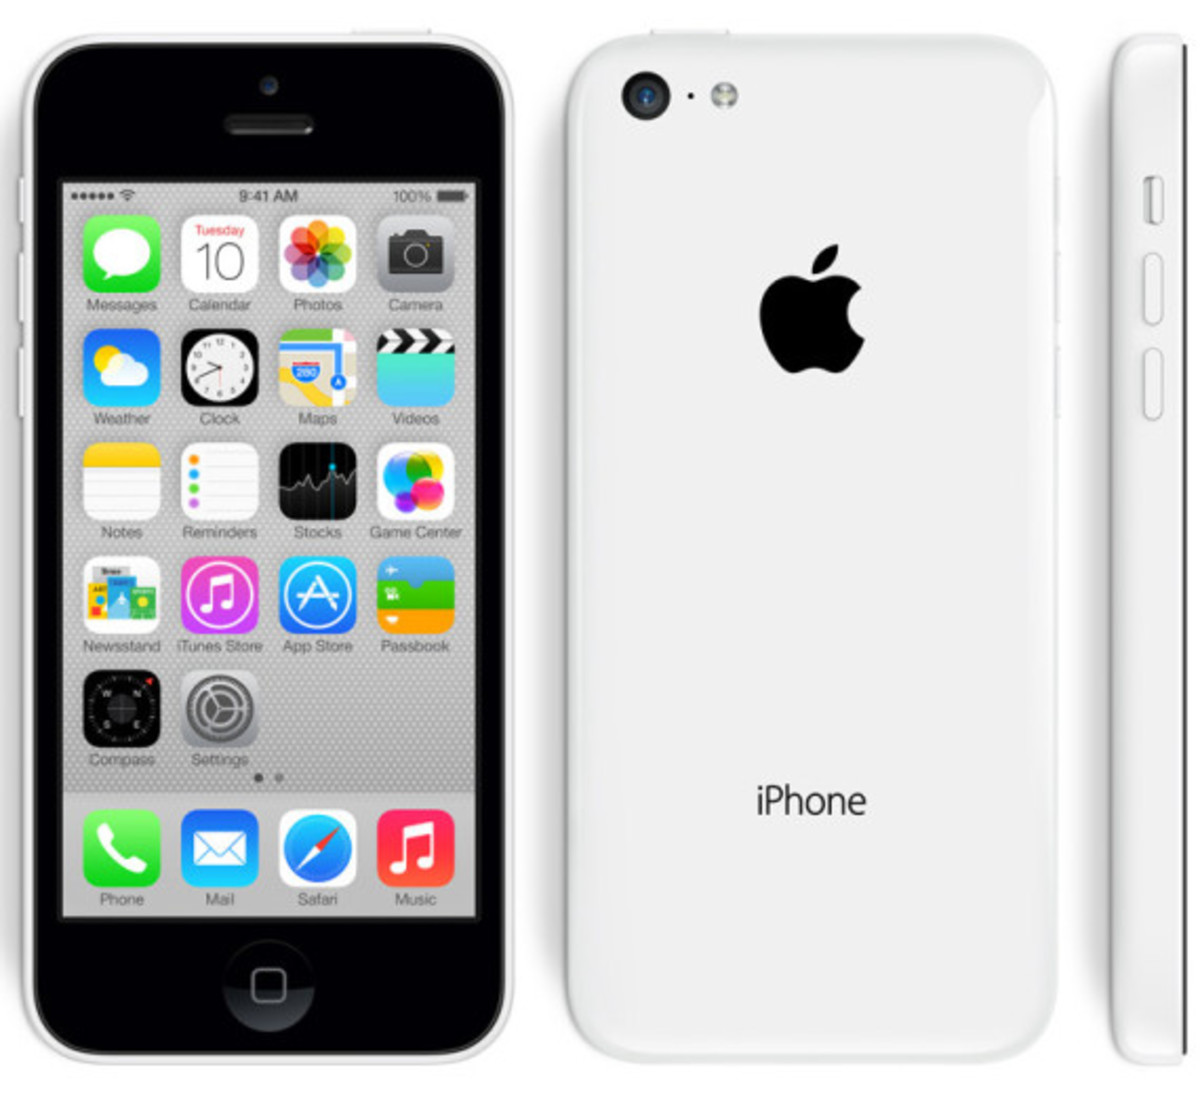 Apple iPhone 5C & 5S | Available Now - 8